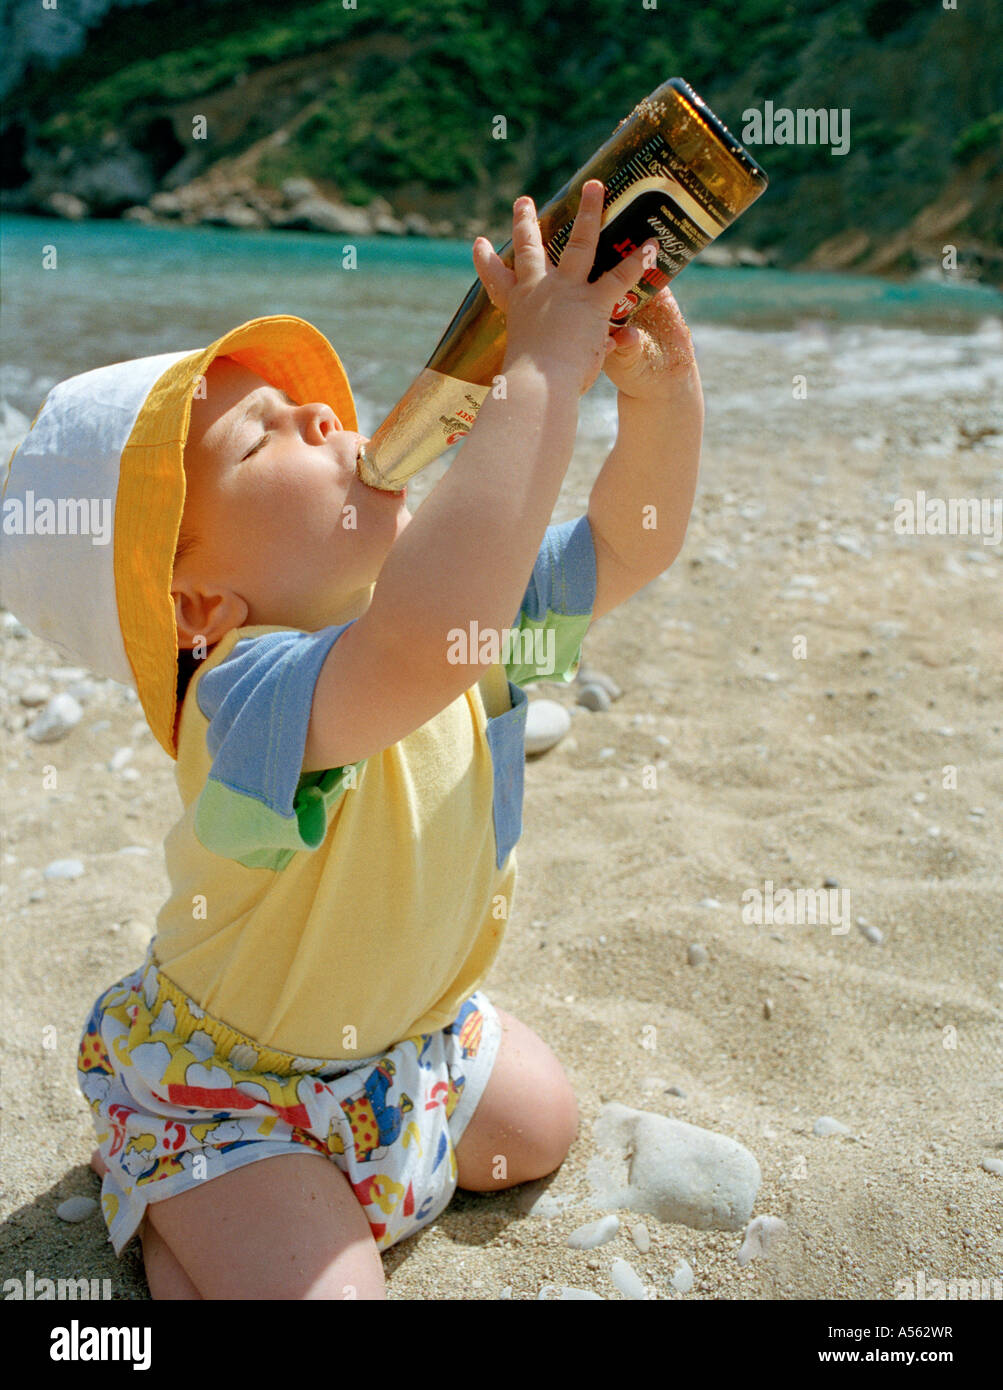 Baby boy trying to drink beer on a beach. - Stock Image